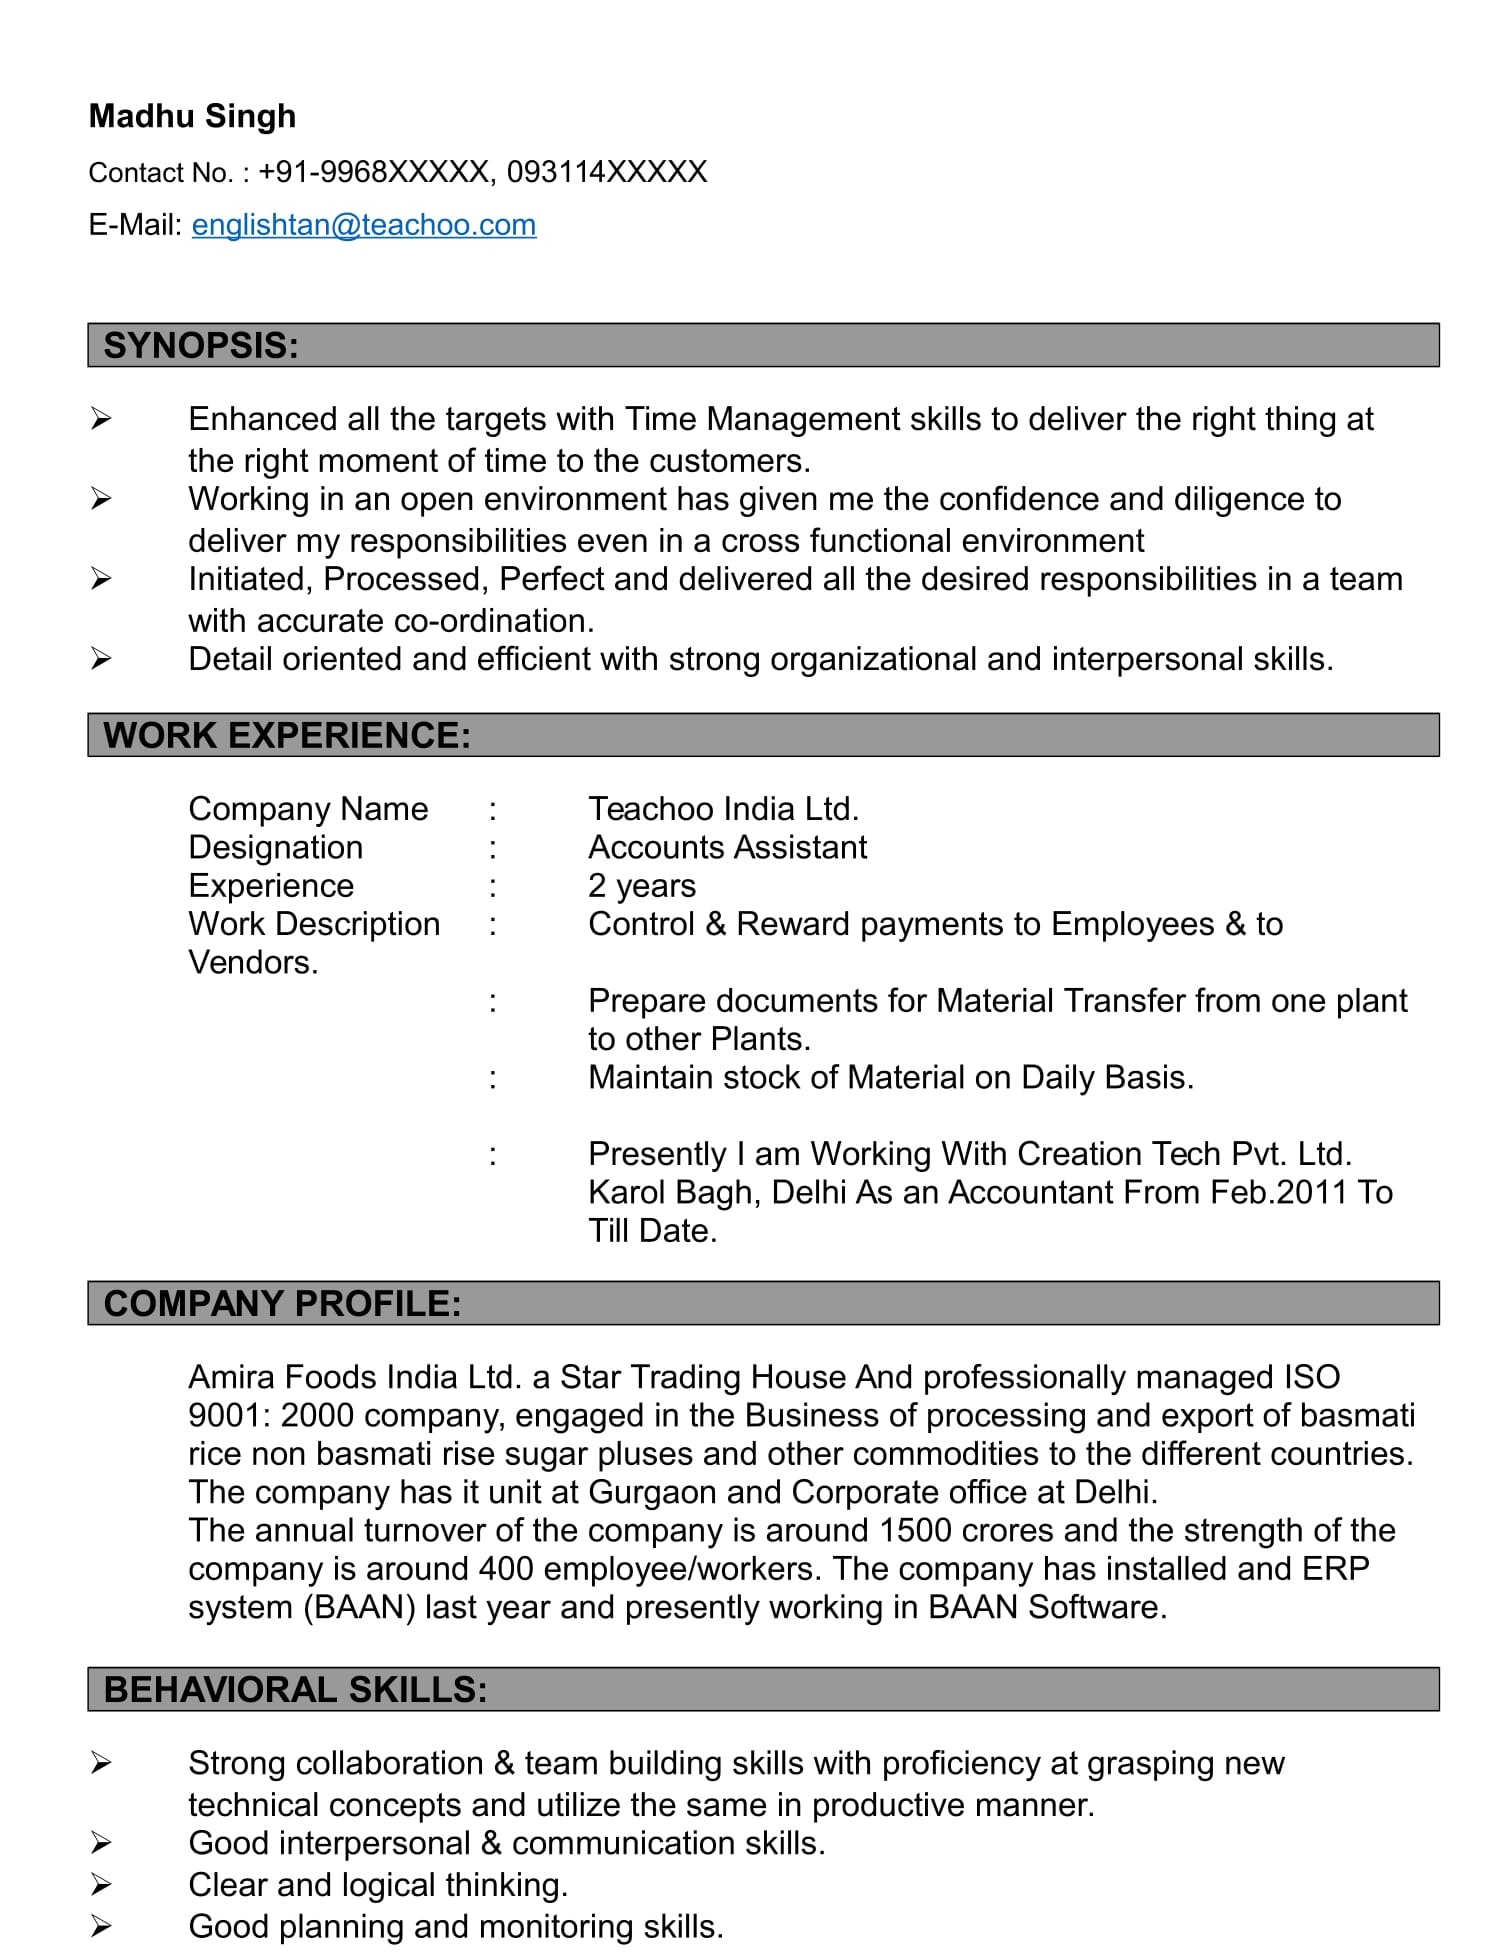 Resumes Formats - Resumes and Cover Letters